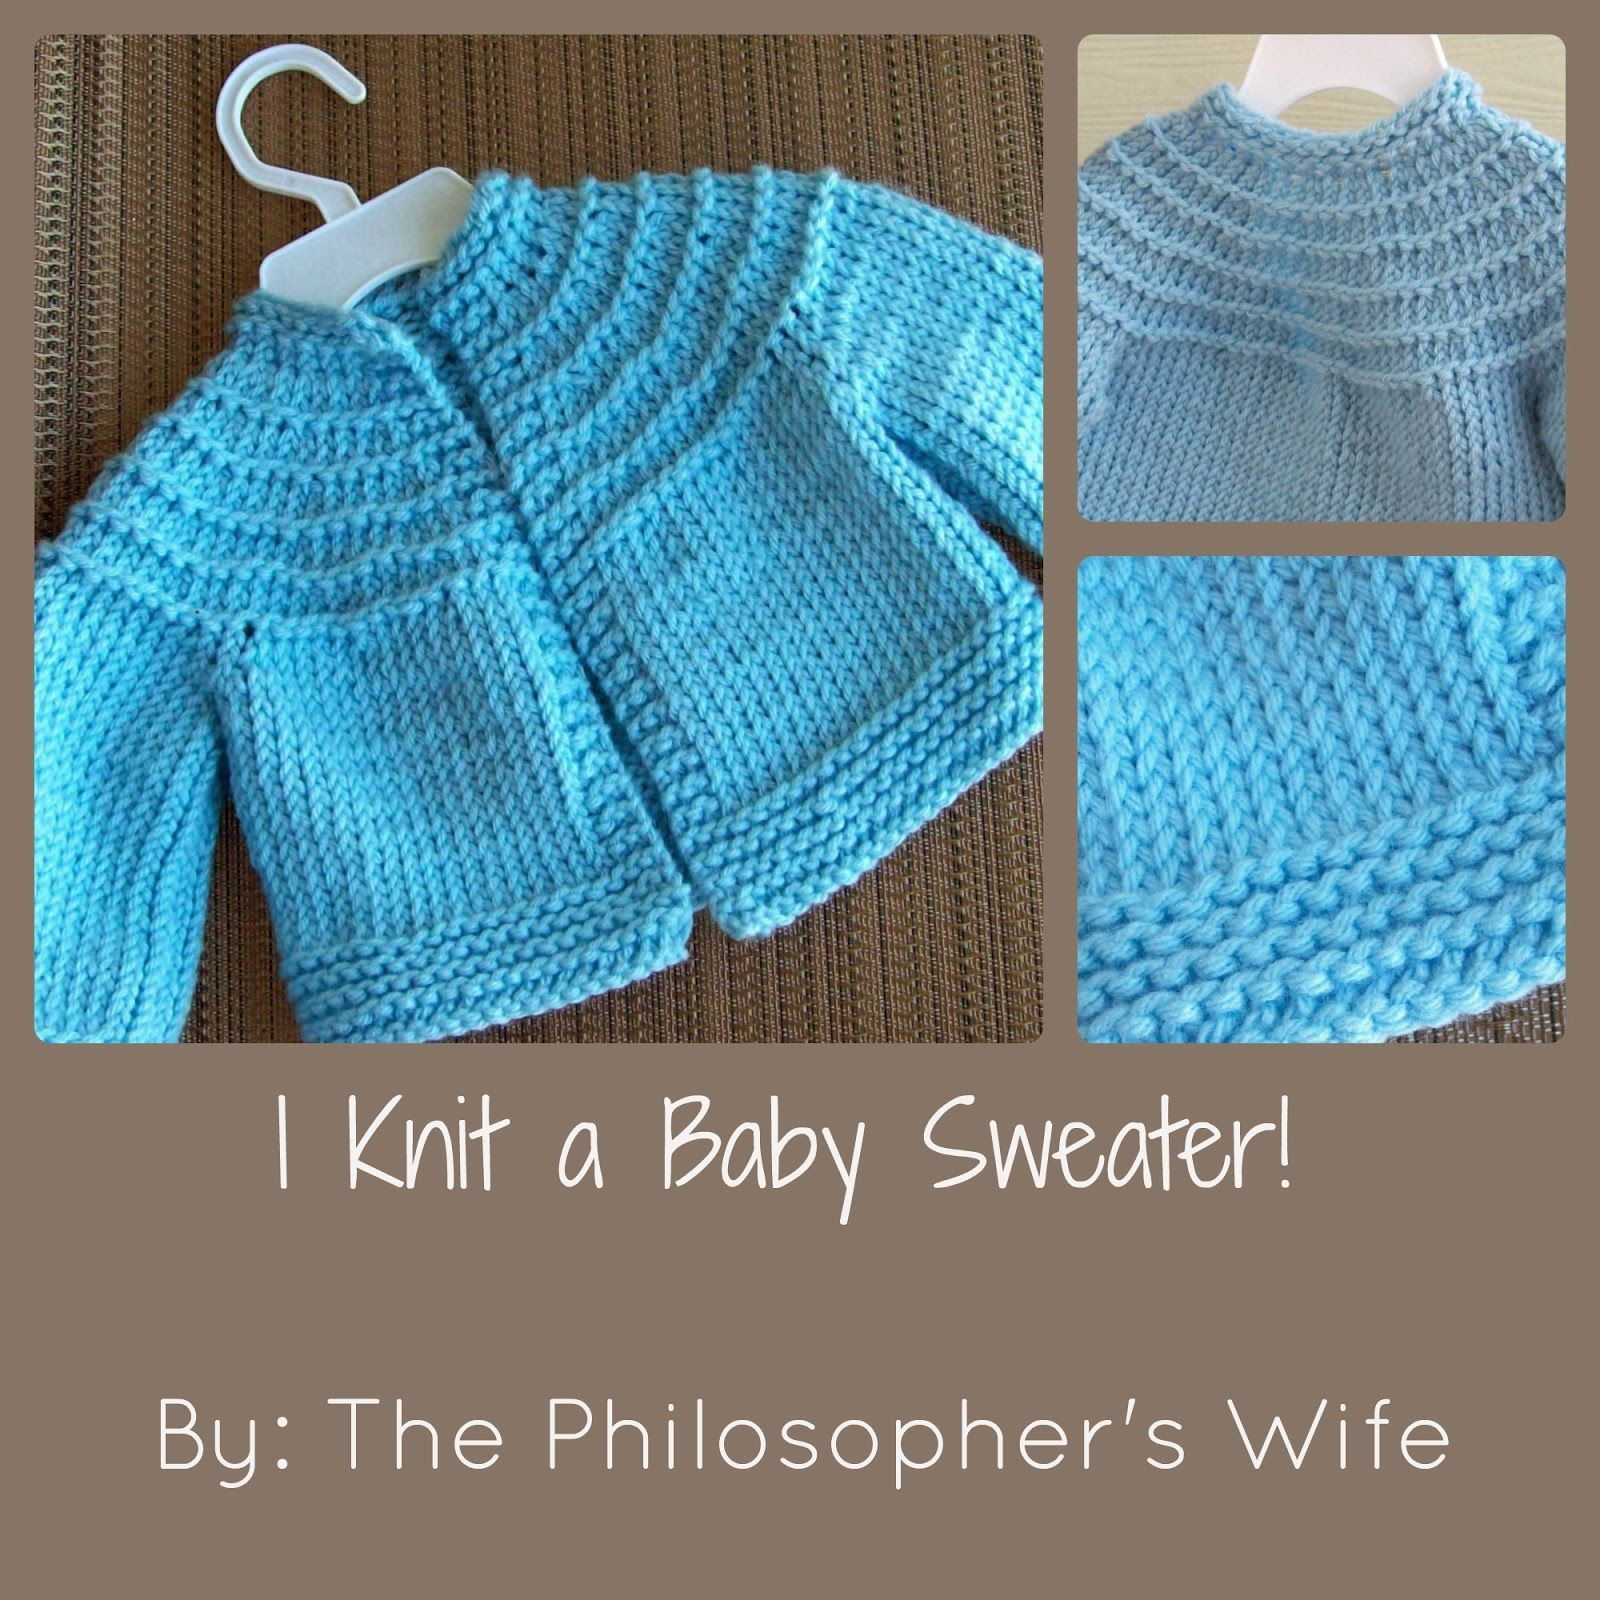 The philosophers wife i knit a baby sweater including a link the philosophers wife i knit a baby sweater including a link to the free pattern bankloansurffo Gallery